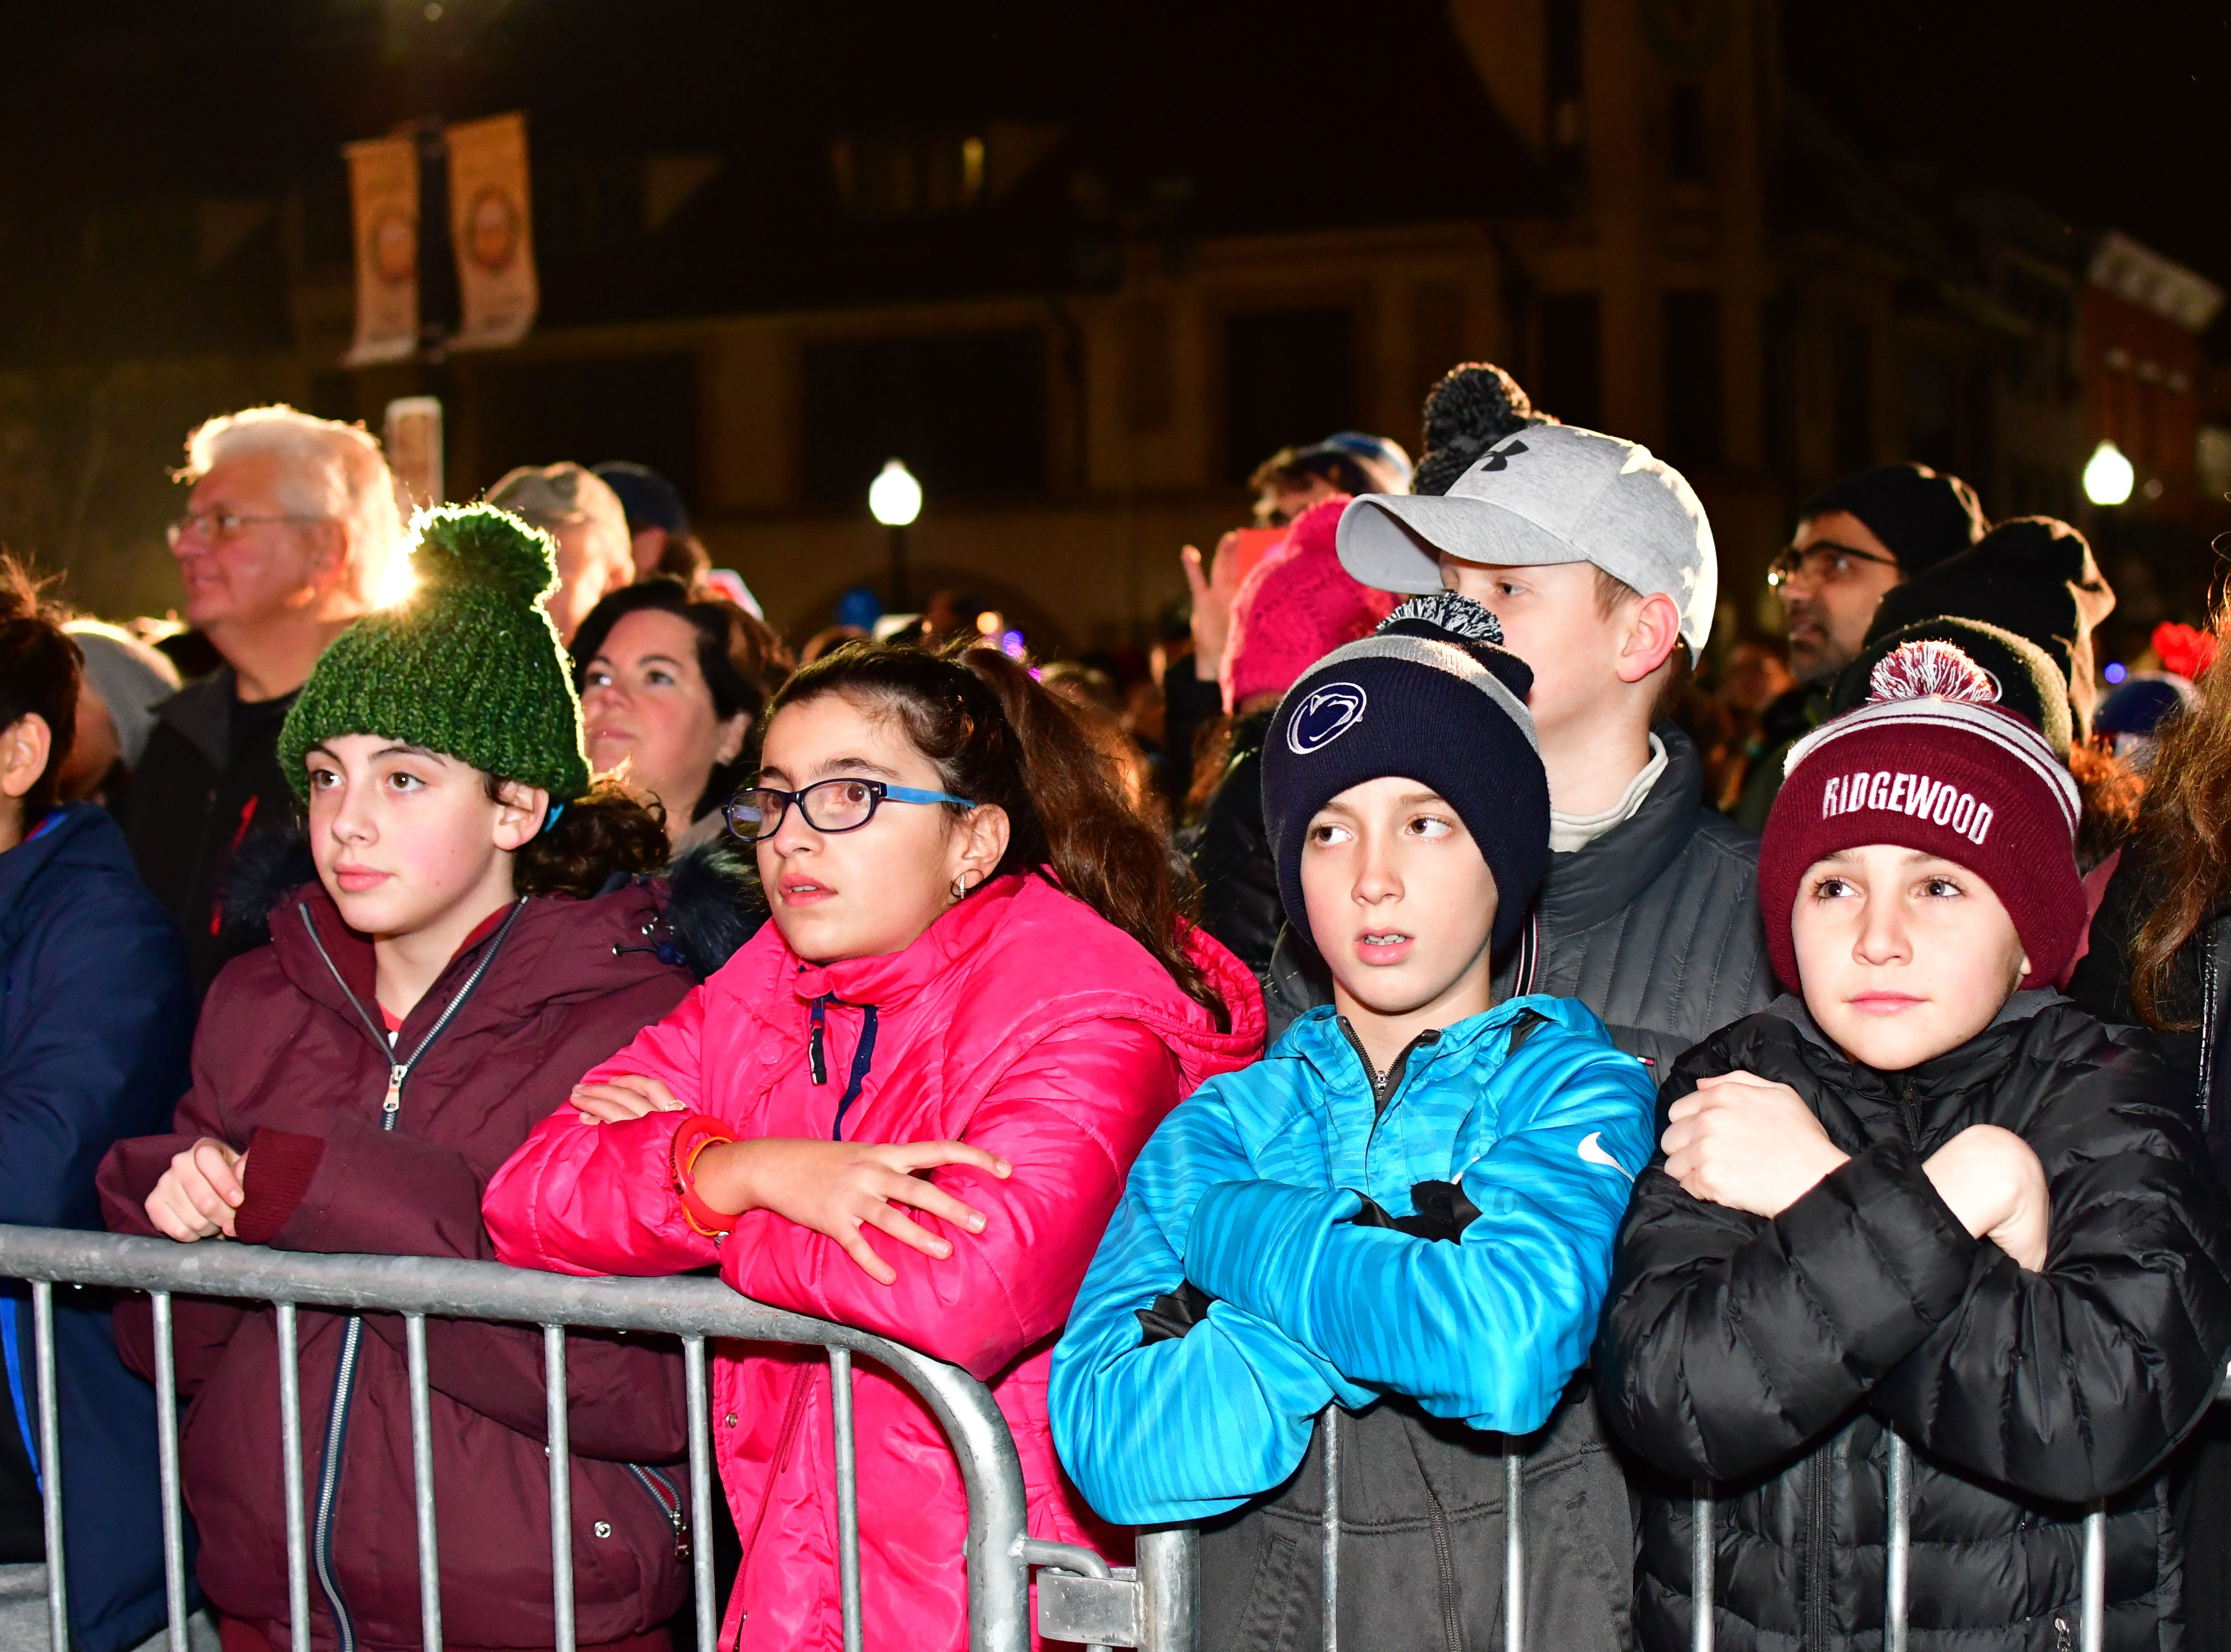 Young residents patiently wait along the street during the holiday festivities along East Ridgewood Avenue in Ridgewood on Nov. 30.